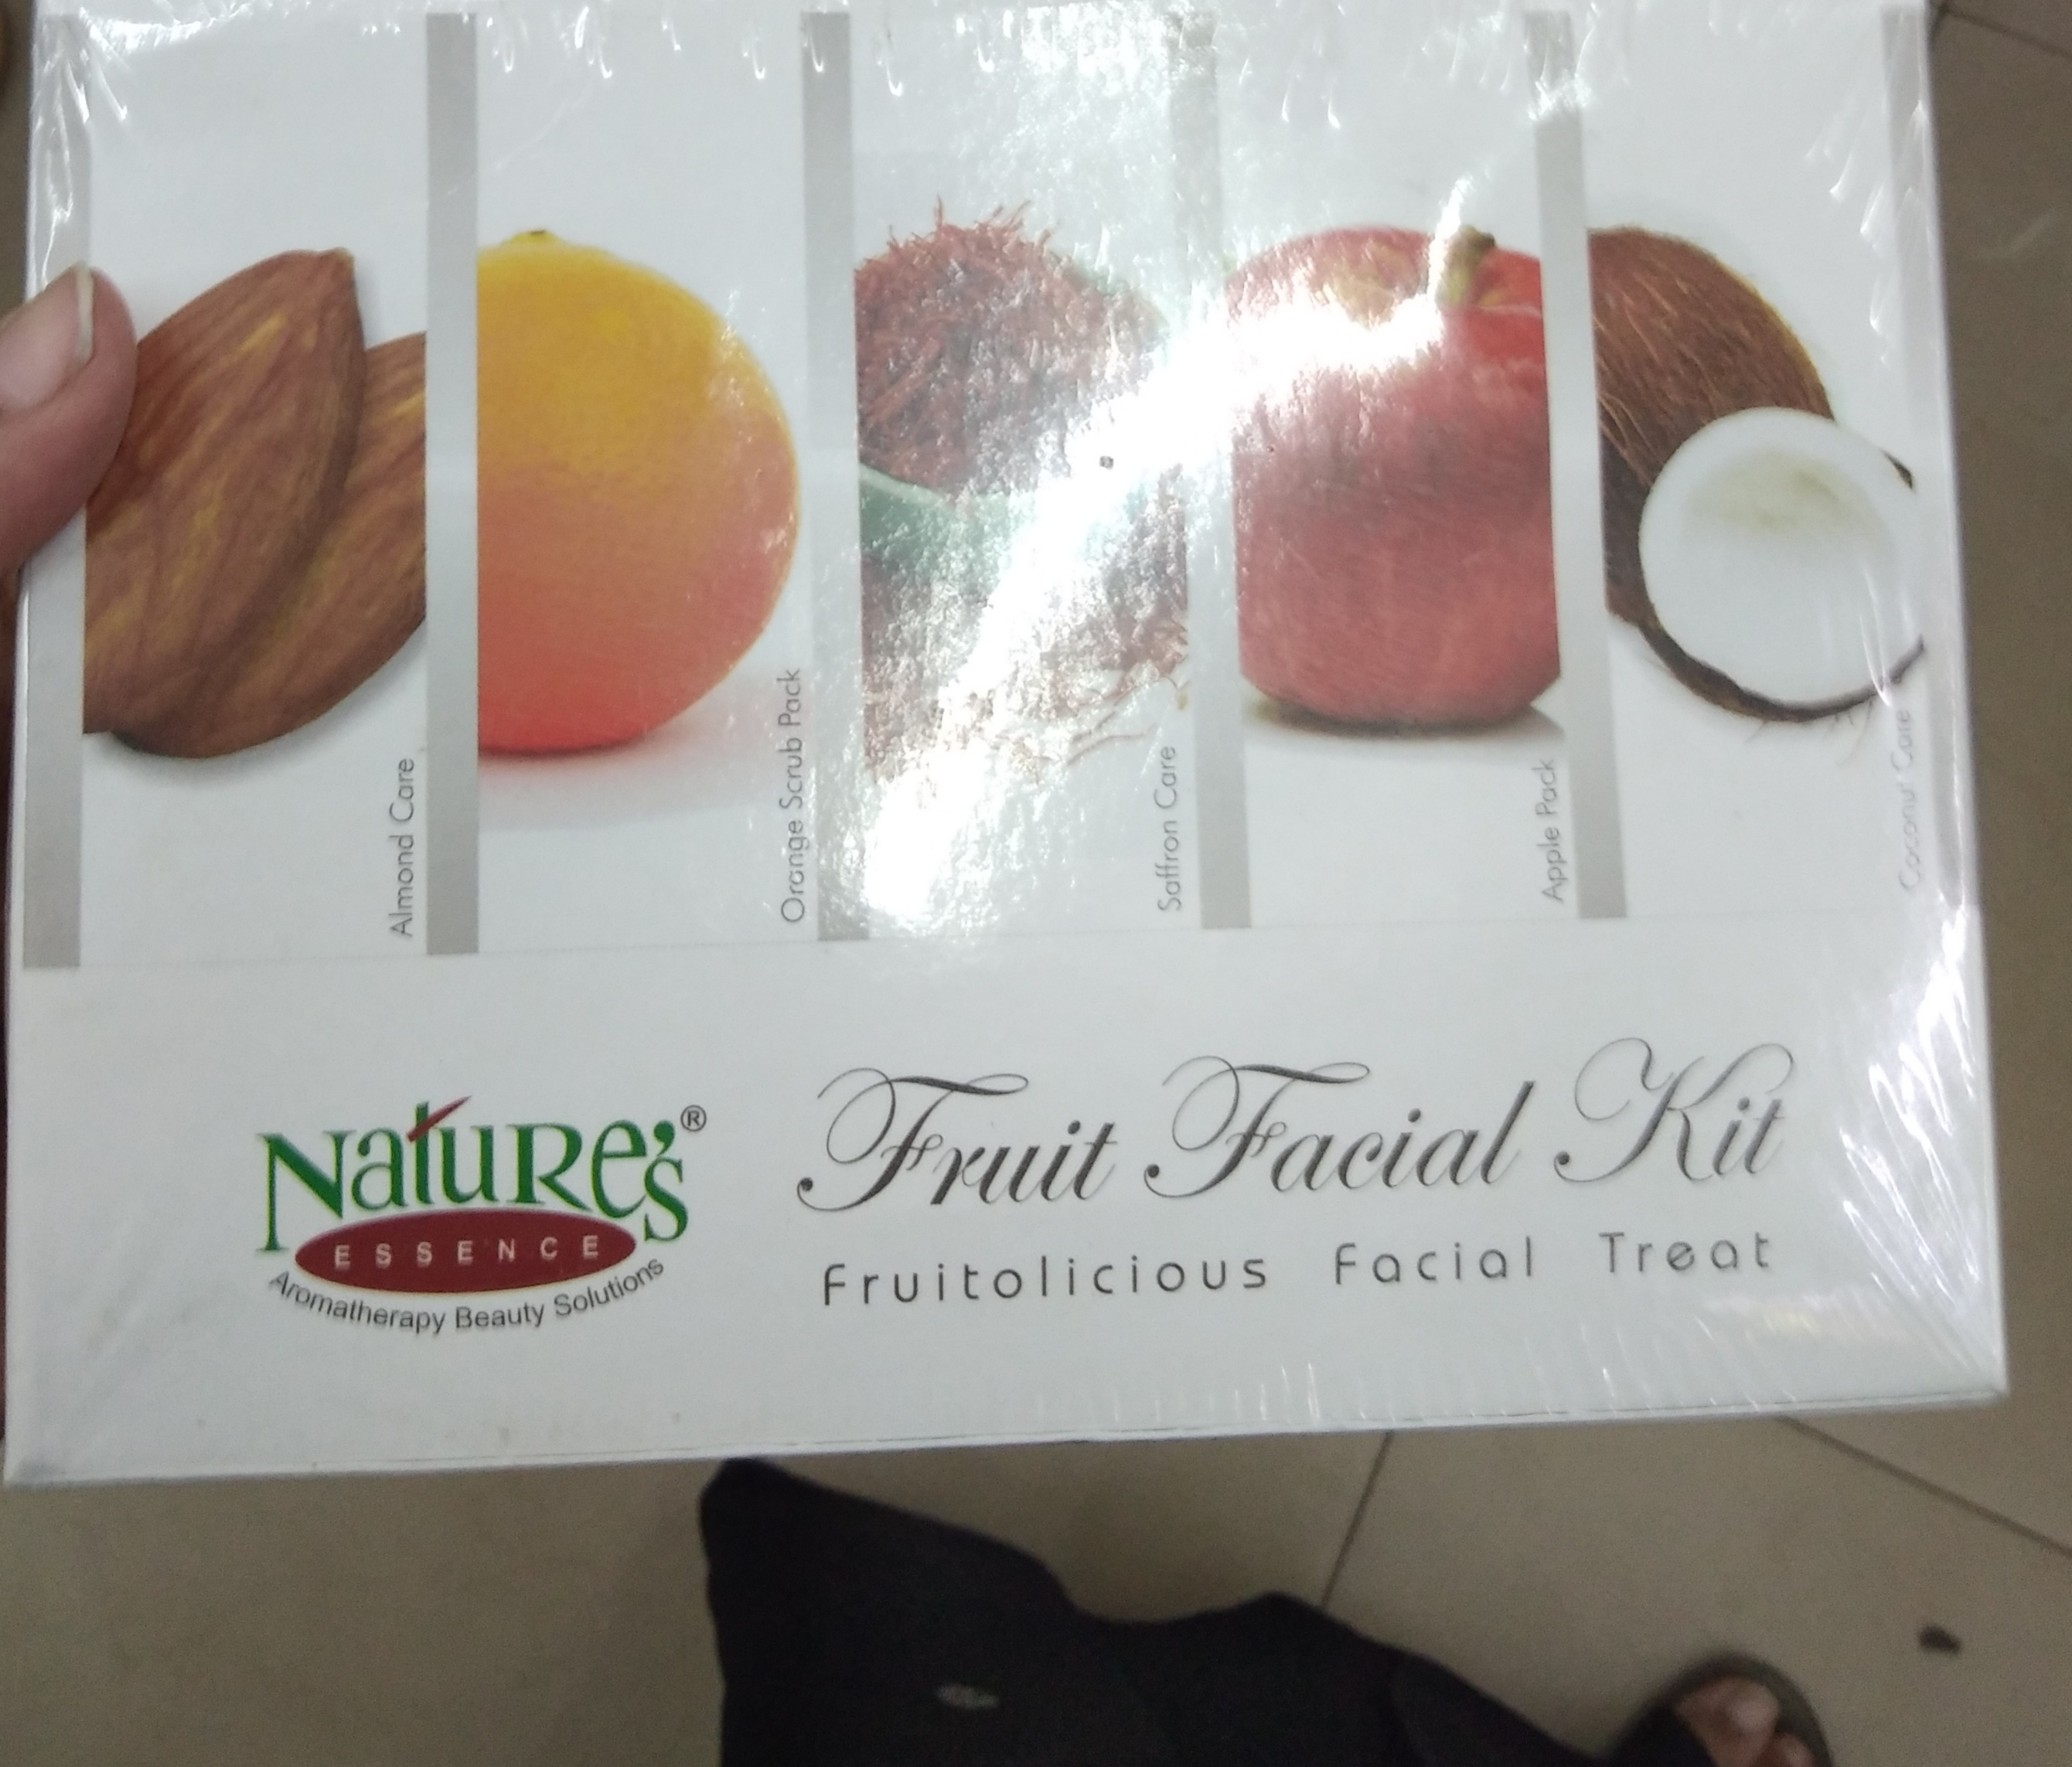 Nature's Essence Fruit Facial Kit-Good one-By Nasreen-1